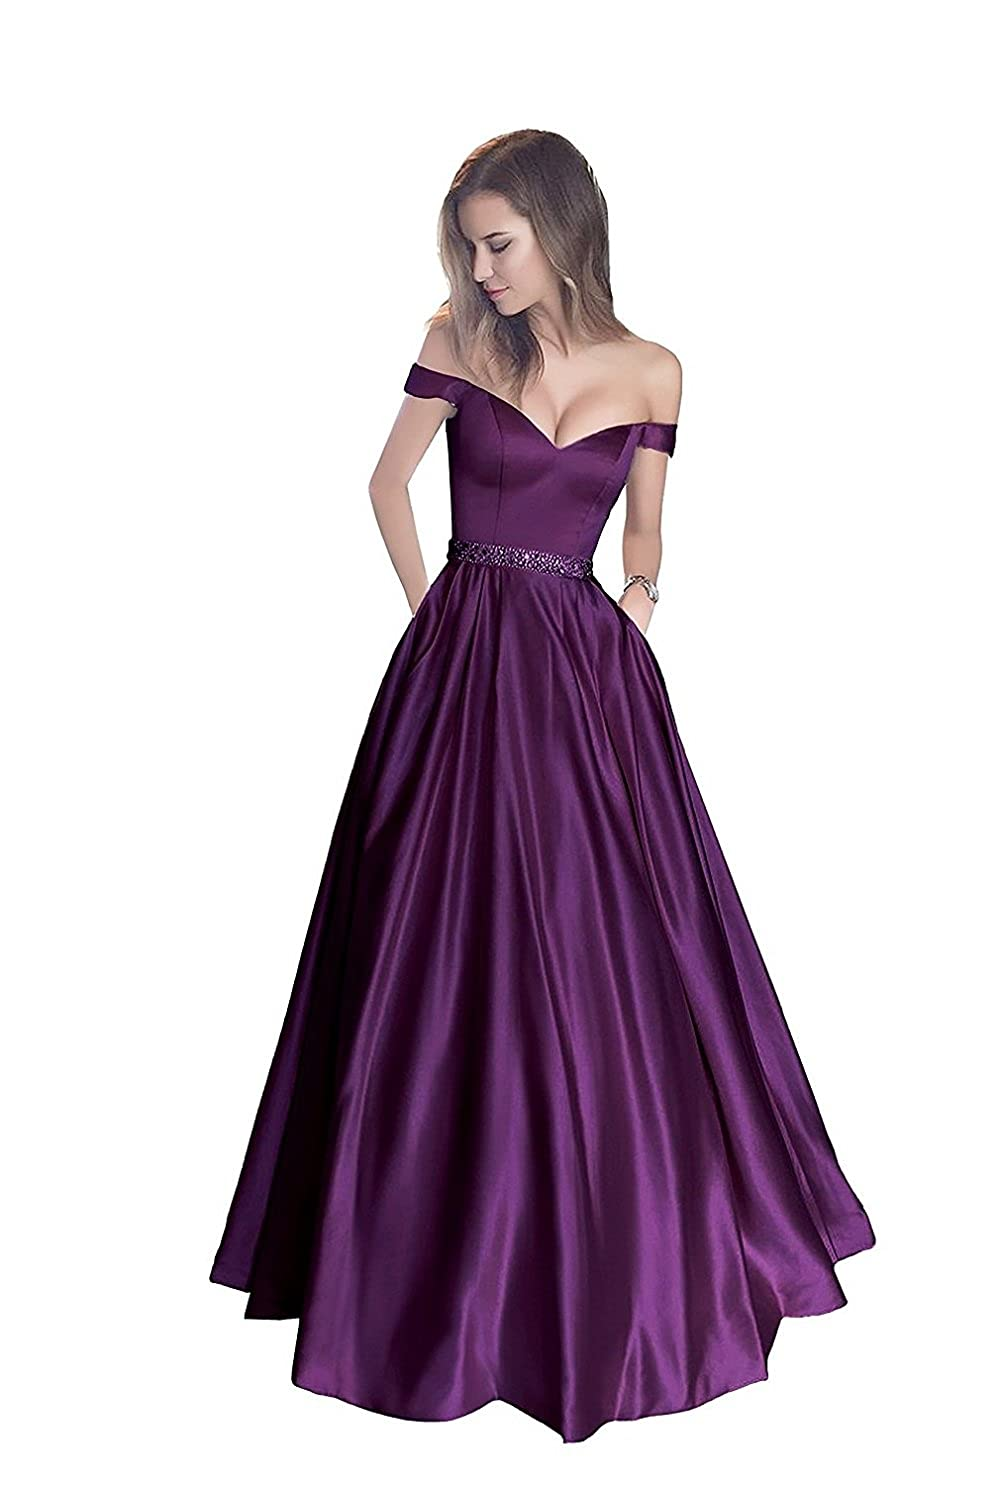 c3adadff78 YuNuo Off Shoulder Long Prom Dresses Beaded 2019 Sexy V Neckline Floor  Length Formal Gowns Evening Wear at Amazon Women s Clothing store